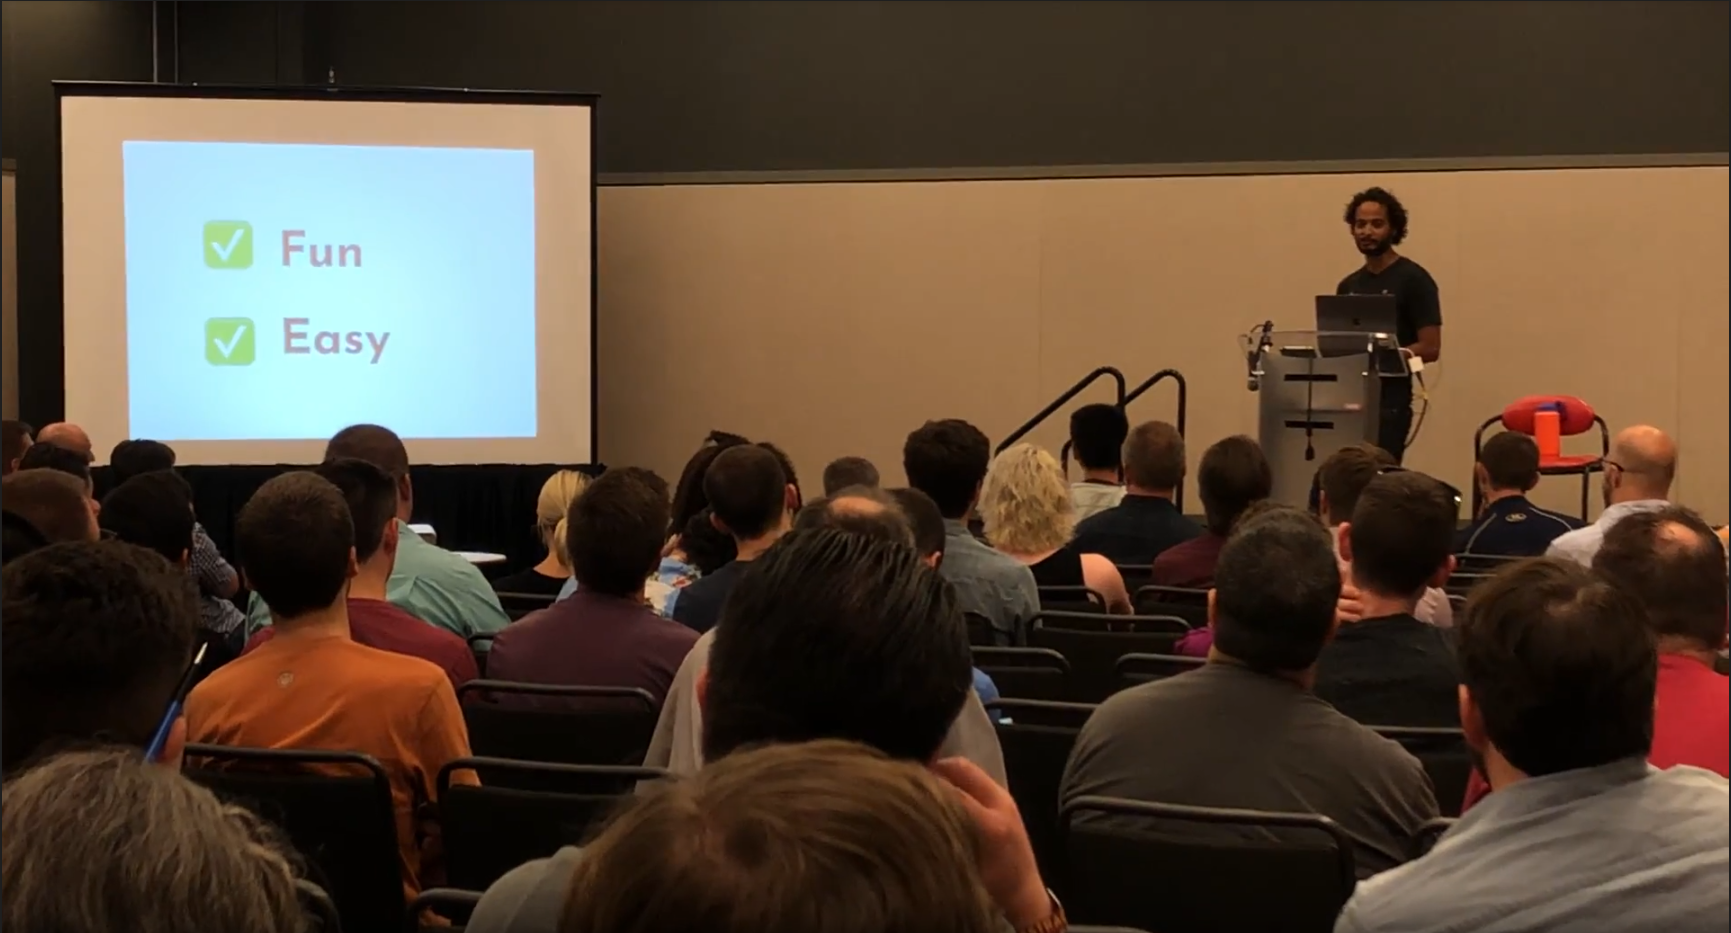 Ali speaking at Abstractions